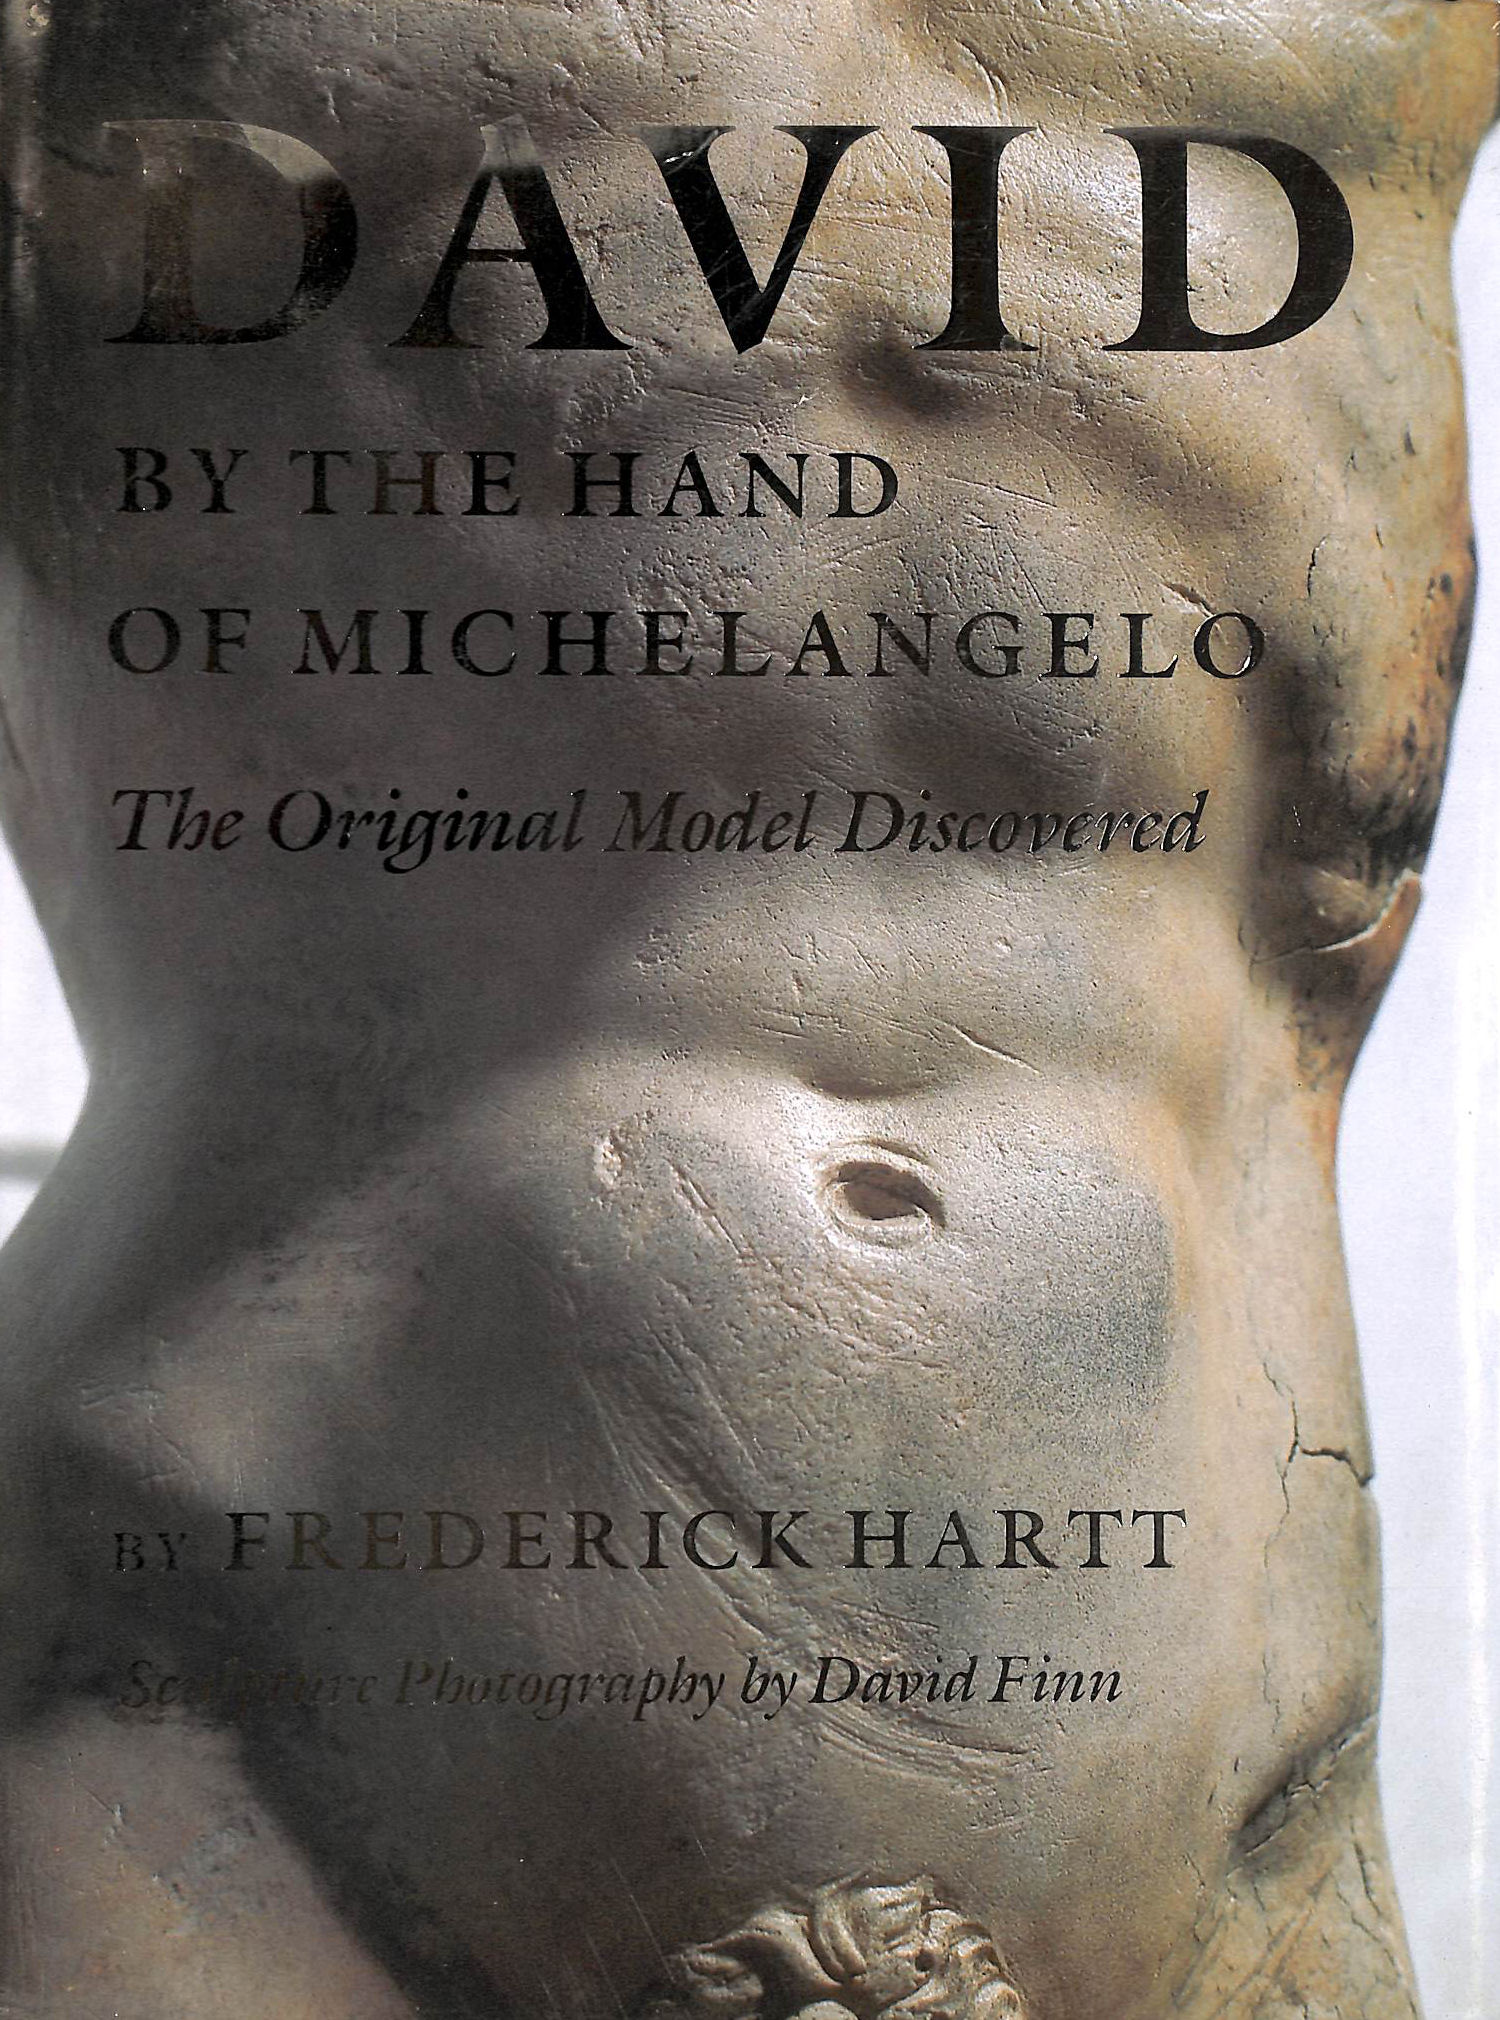 Image for David by the Hand of Michelangelo: The Original Model Discovered